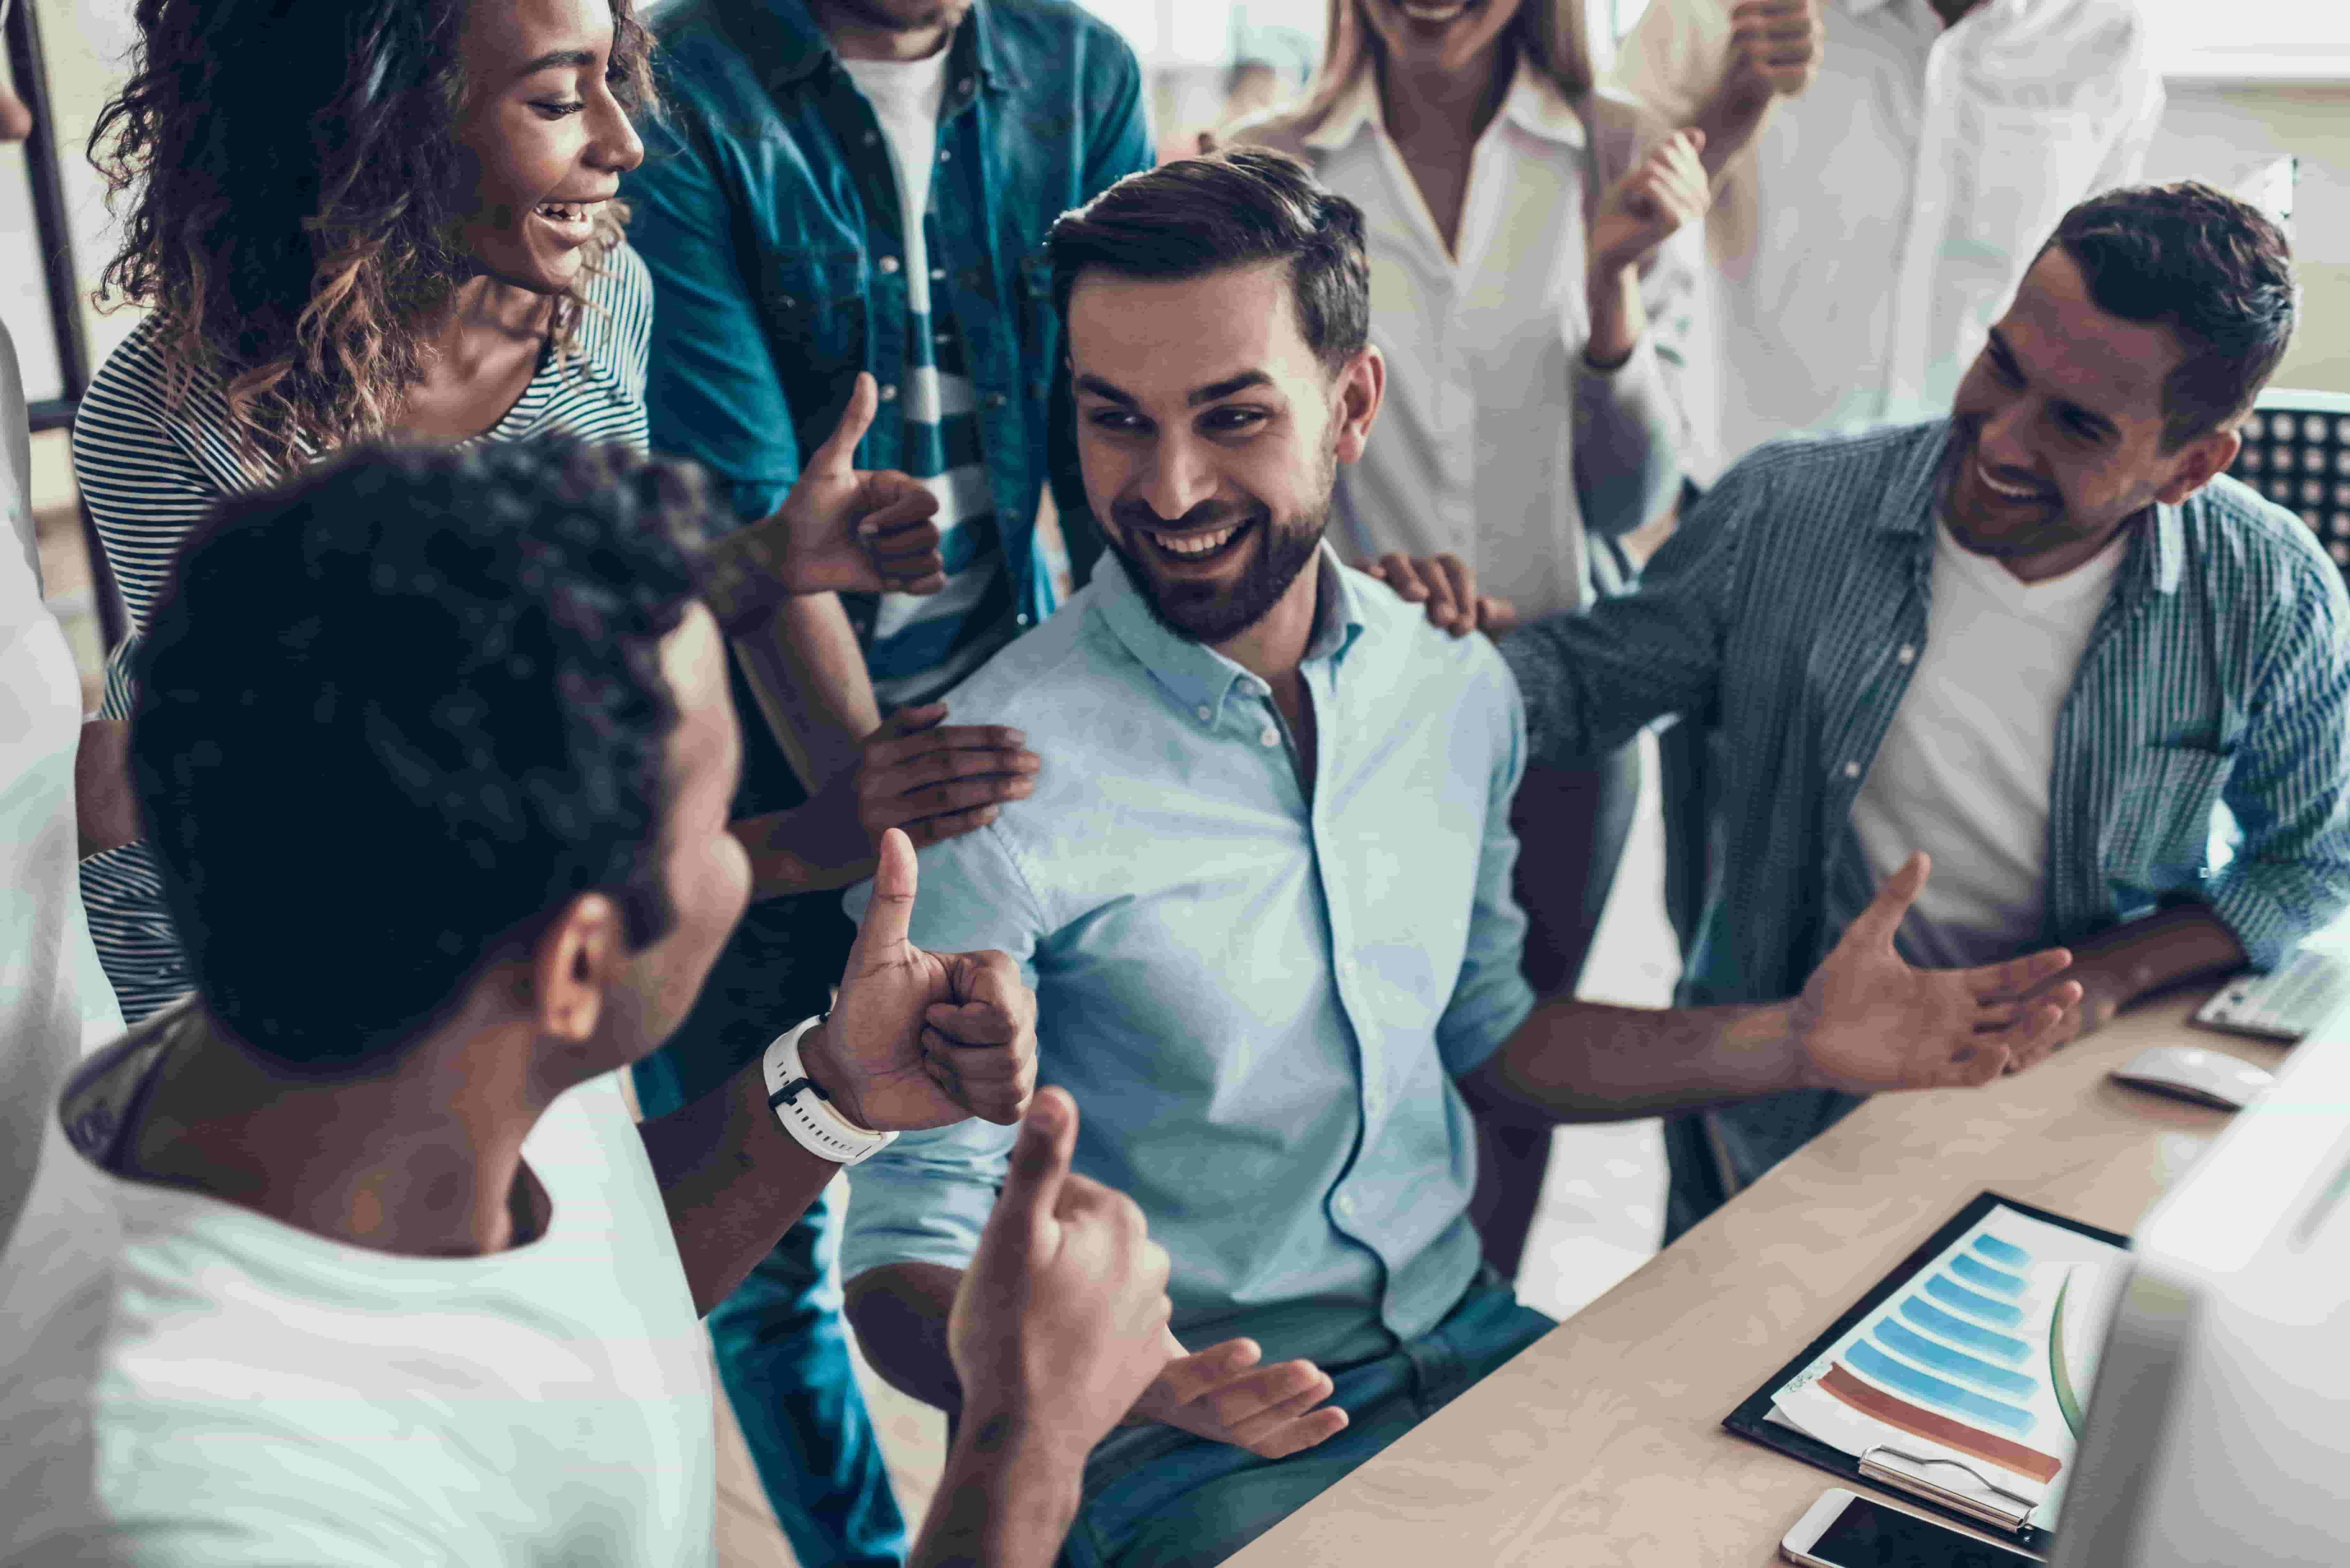 Busy worker is congratulated by his team for increasing profits